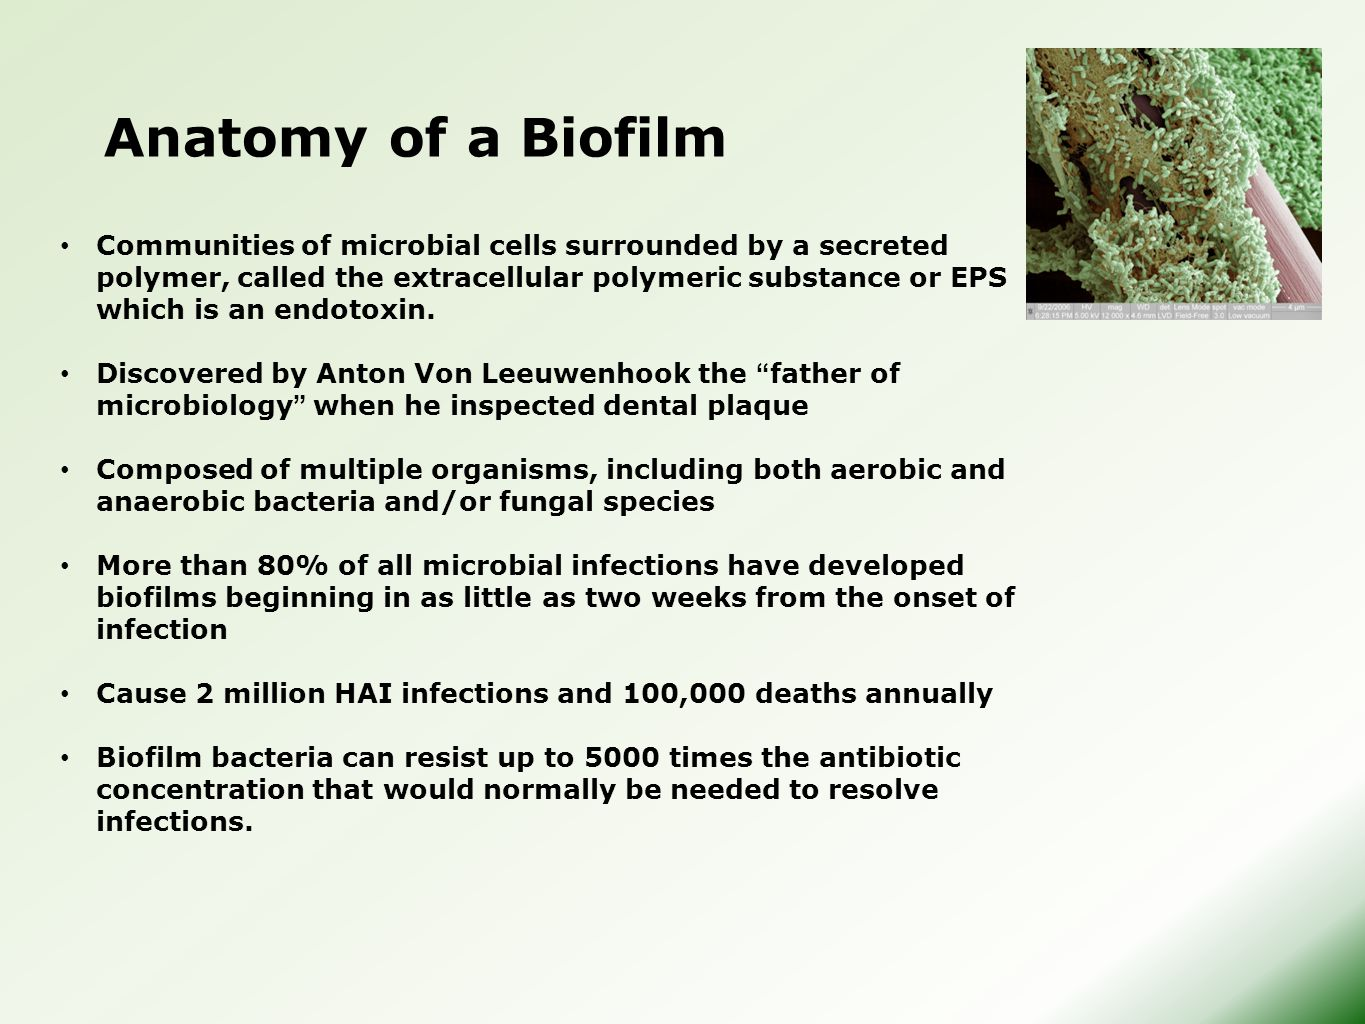 Anatomy of a Biofilm